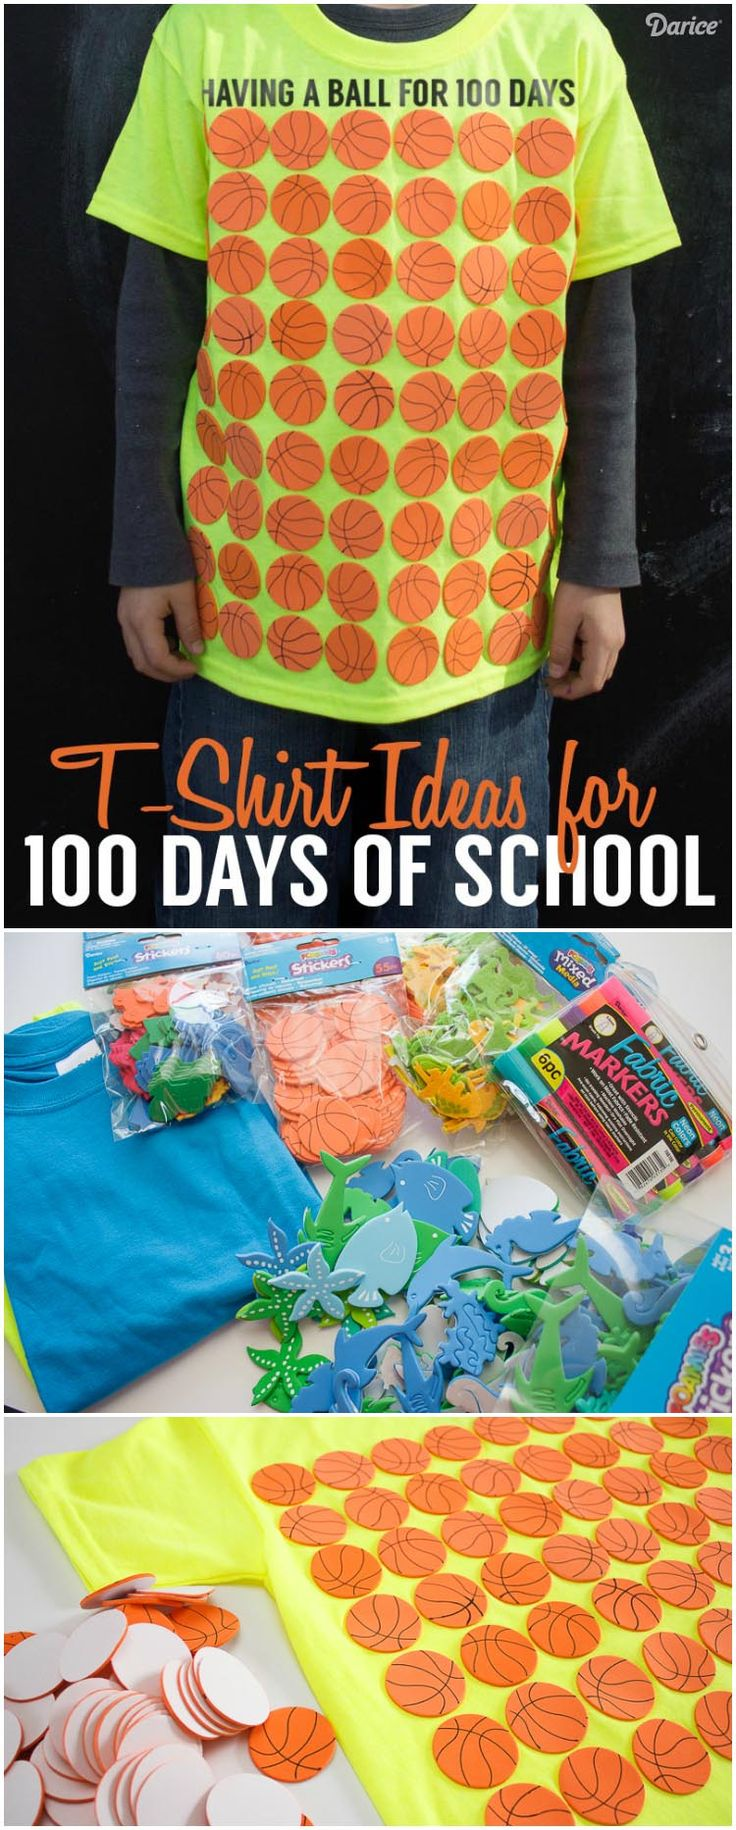 The 100th day of school sneaks tends to sneak up on you every year. Plan ahead with these 100 days of school shirt ideas to fit any kid's personality.